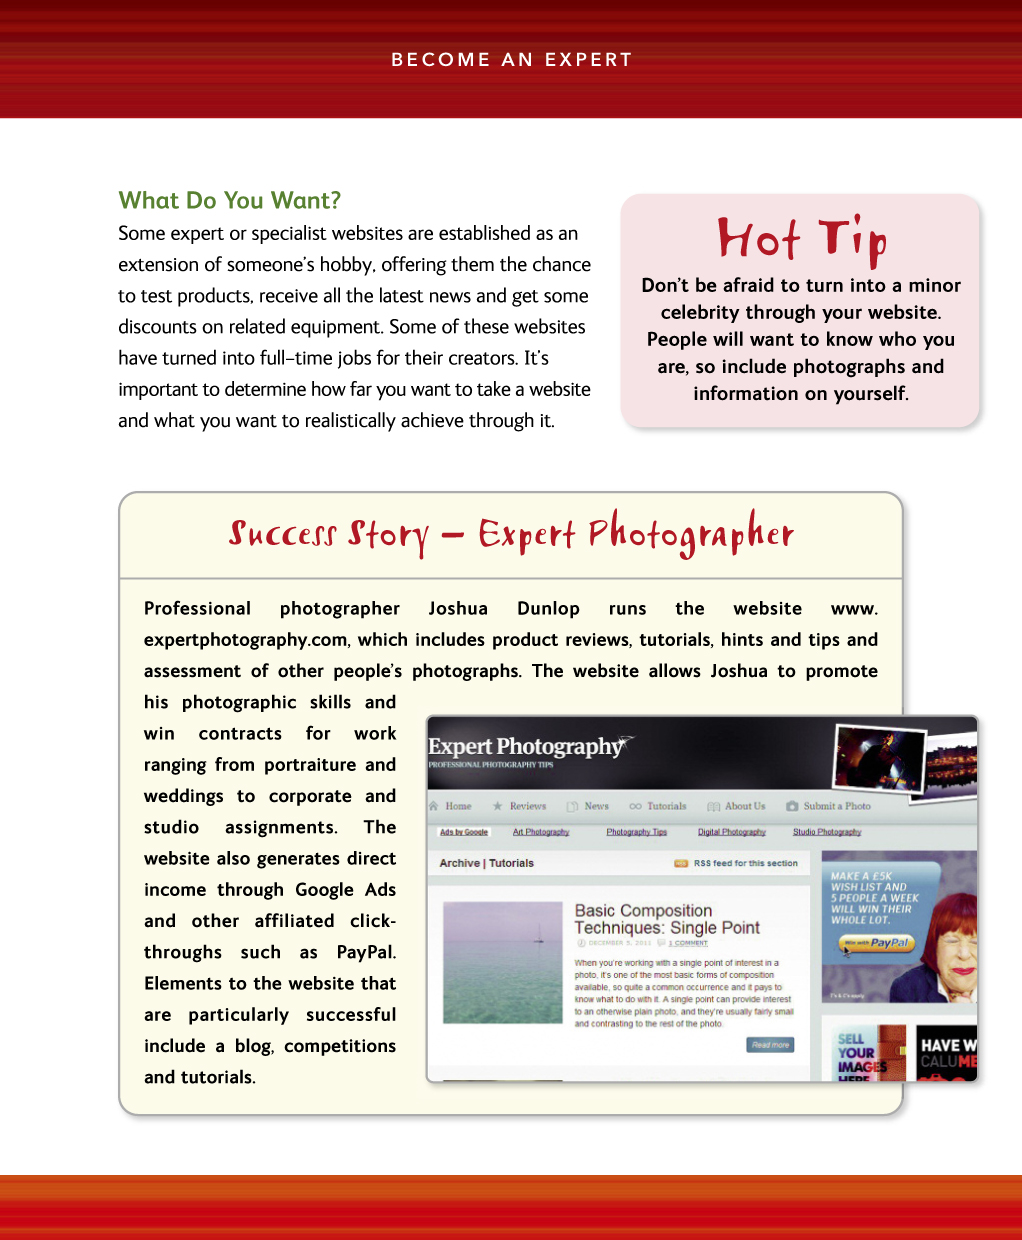 How to Make Money from Your Website. Expert Advice Made Easy inside page 02